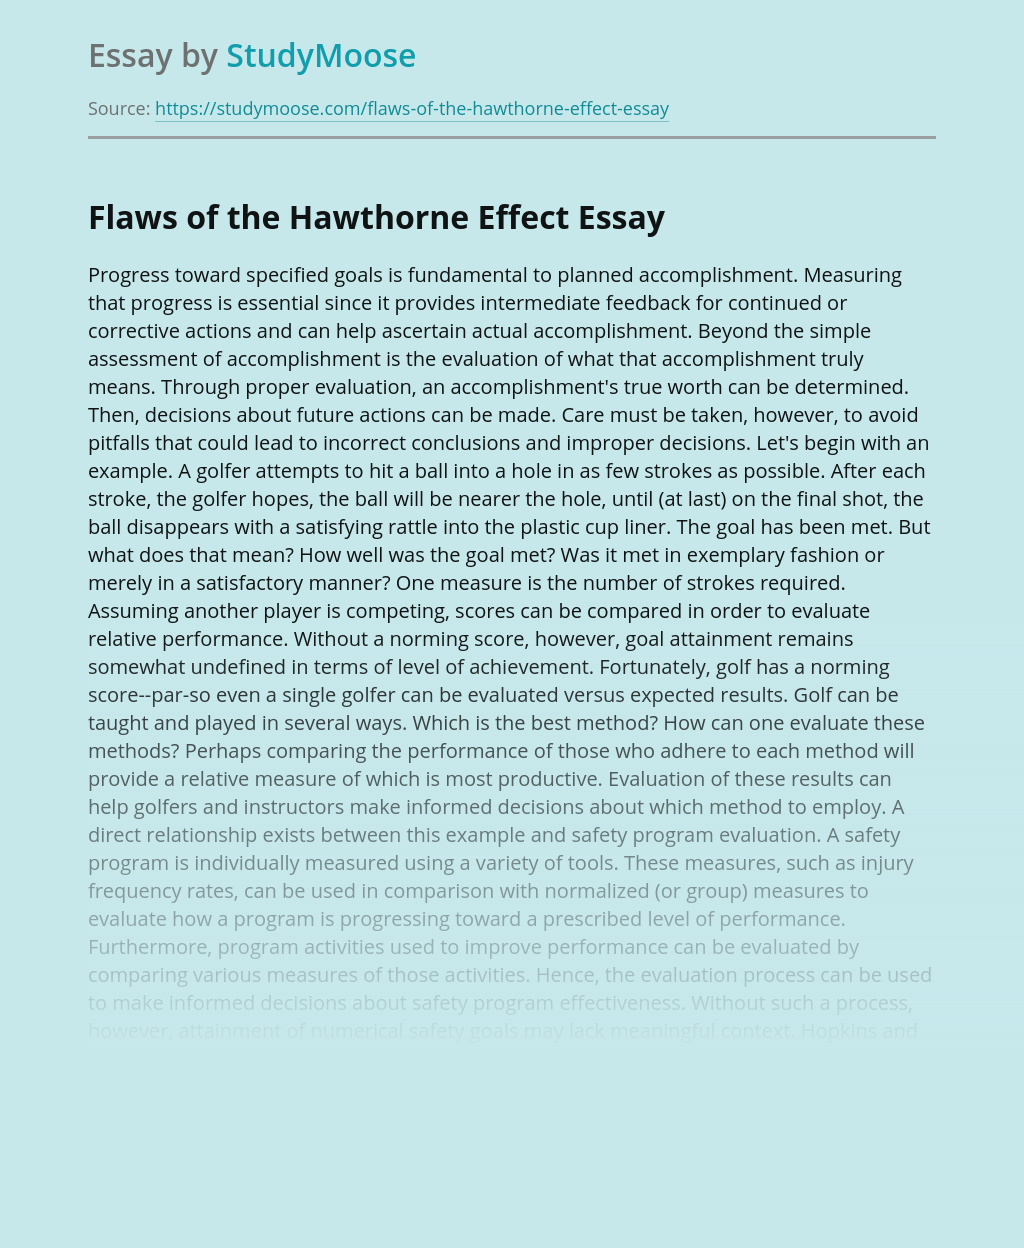 Flaws of the Hawthorne Effect